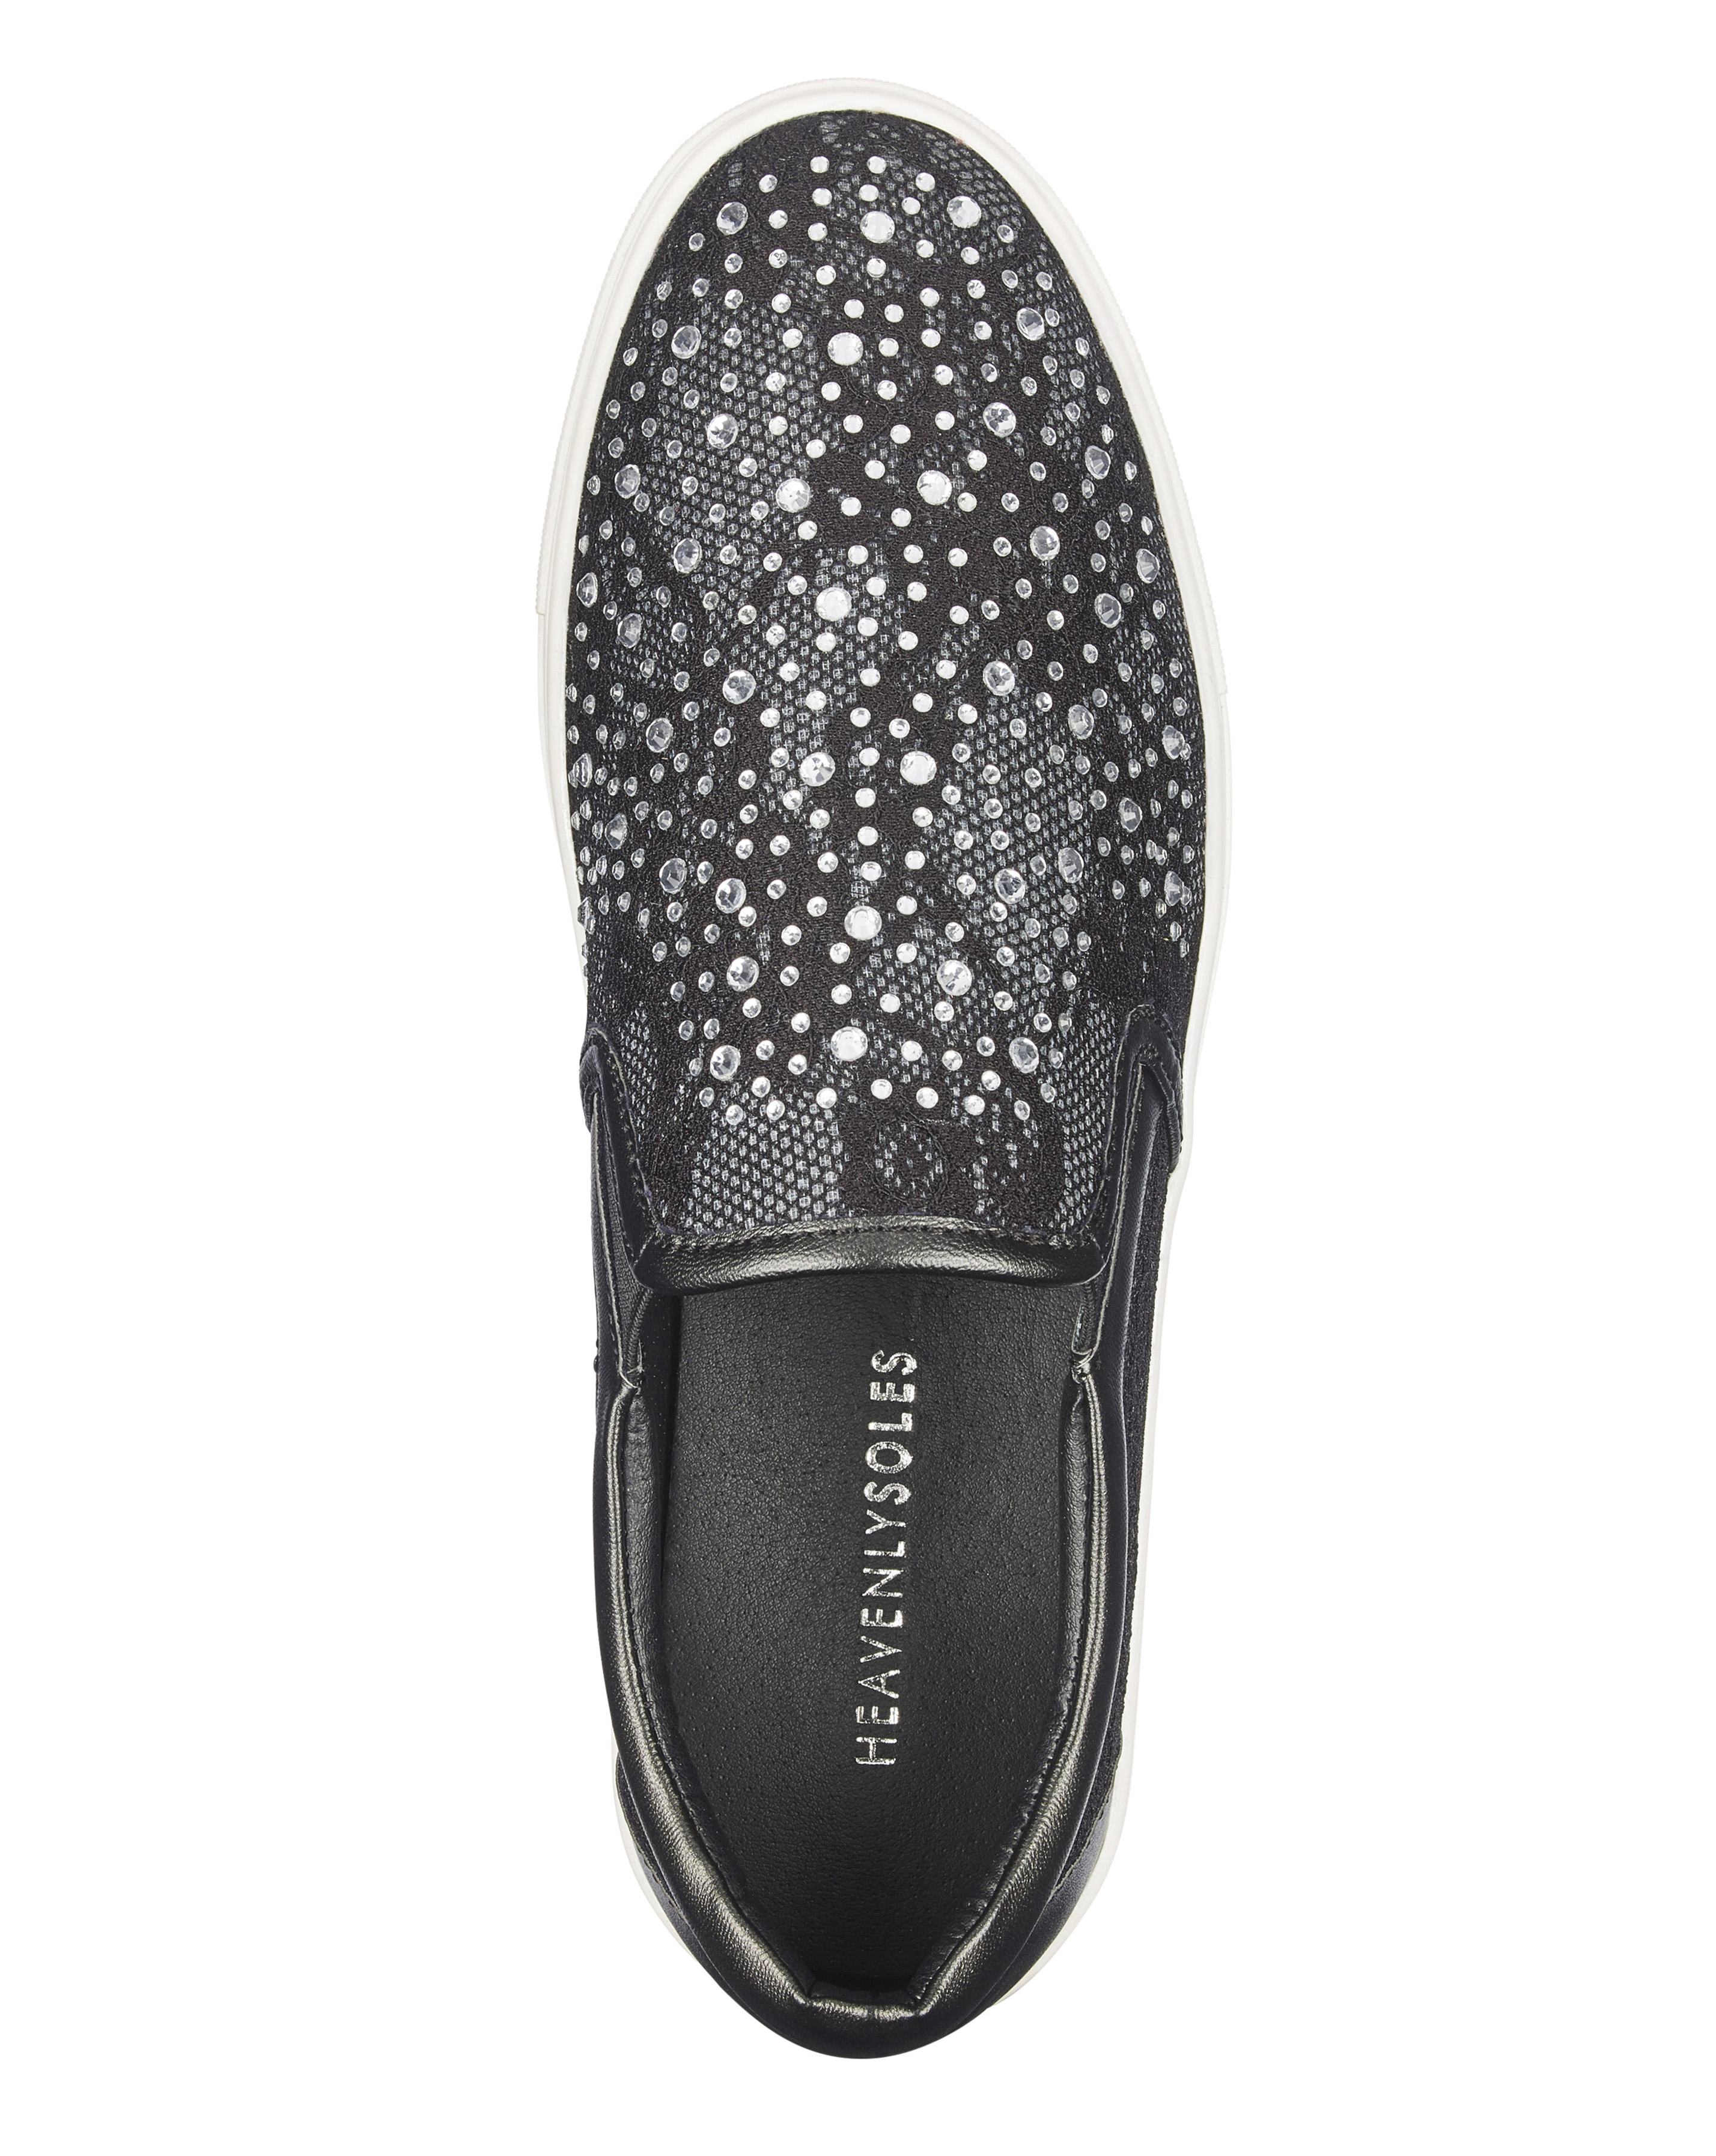 Womens-Shoes-Slip-On-Heavenly-Soles-Diamante-Lace-Trainers-Leisure-JD-Williams thumbnail 4